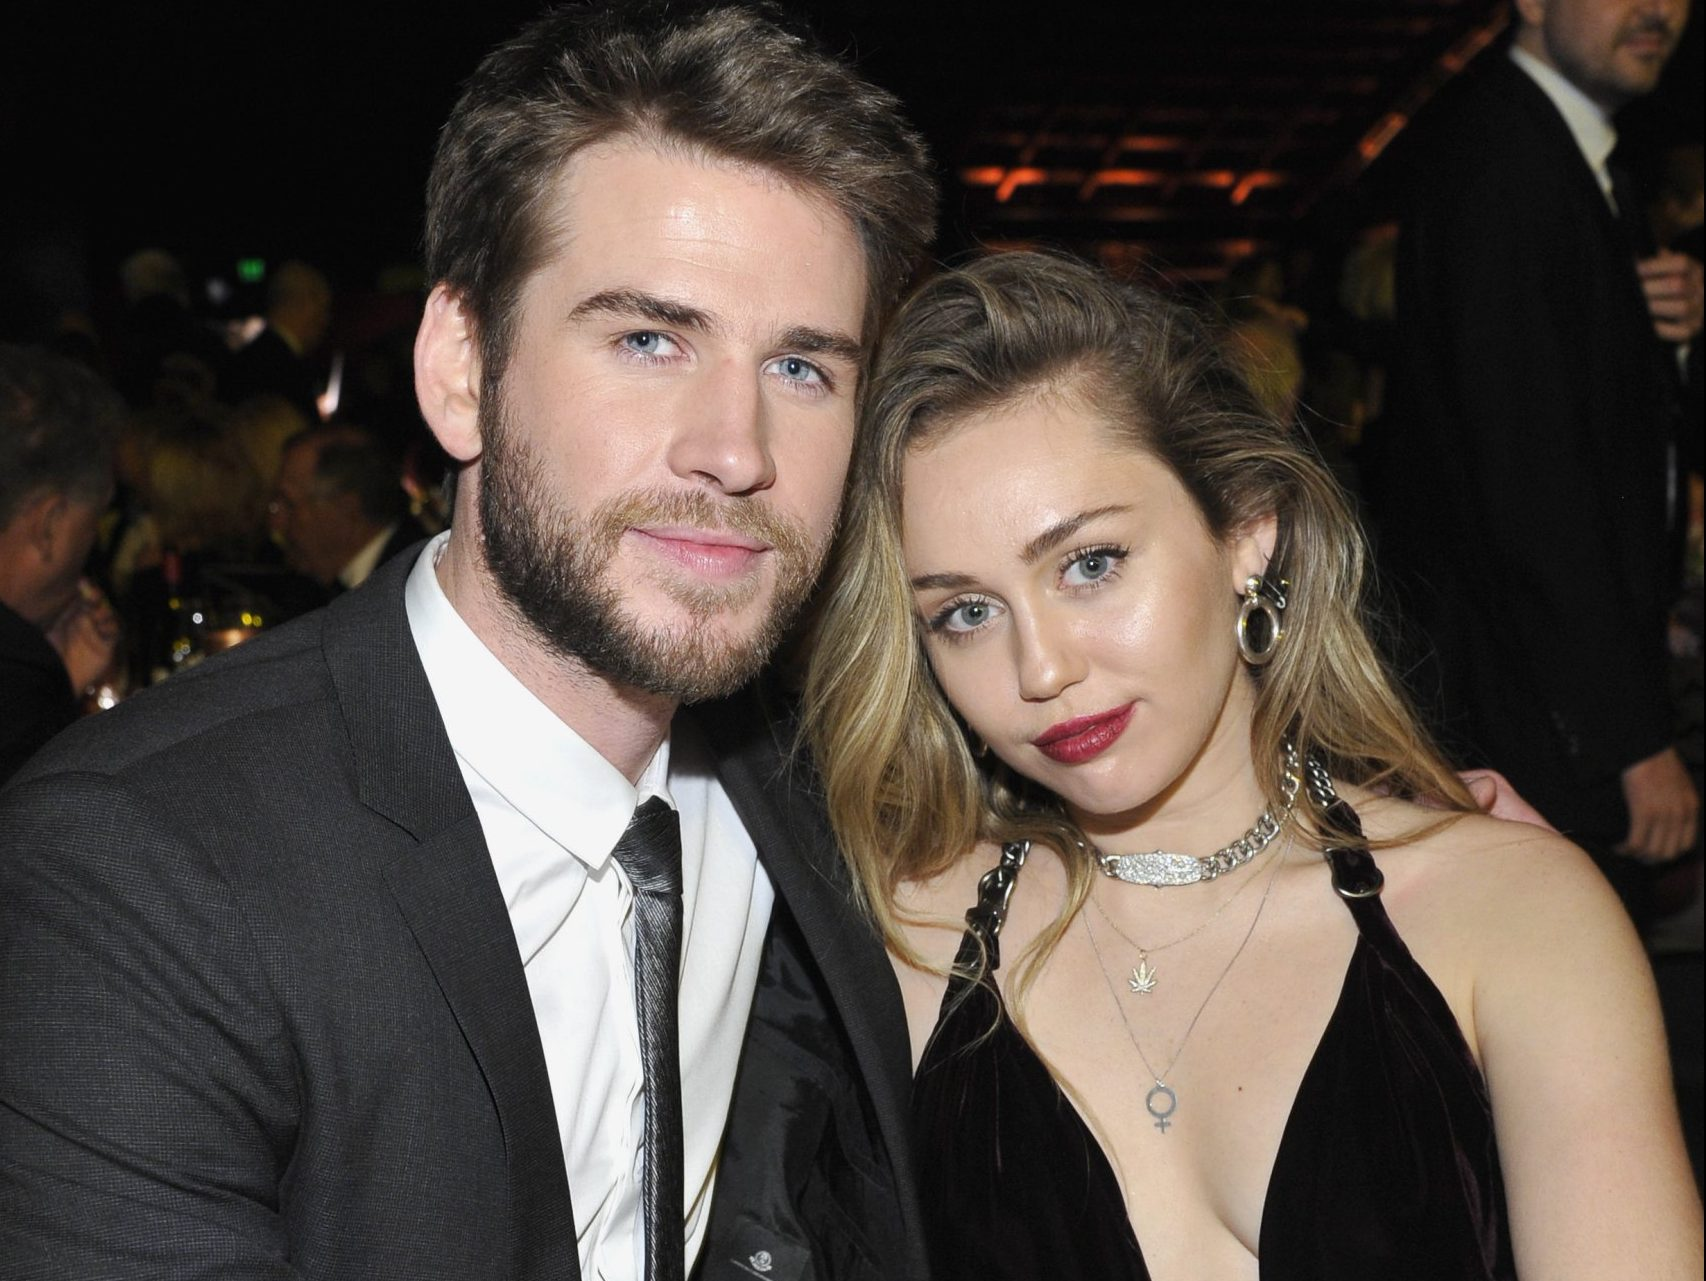 CULVER CITY, CA - JANUARY 26: Honoree Liam Hemsworth (L) and Miley Cyrus attend the 2019 G'Day USA Gala at 3LABS on January 26, 2019 in Culver City, California. (Photo by John Sciulli/Getty Images for G'Day USA )